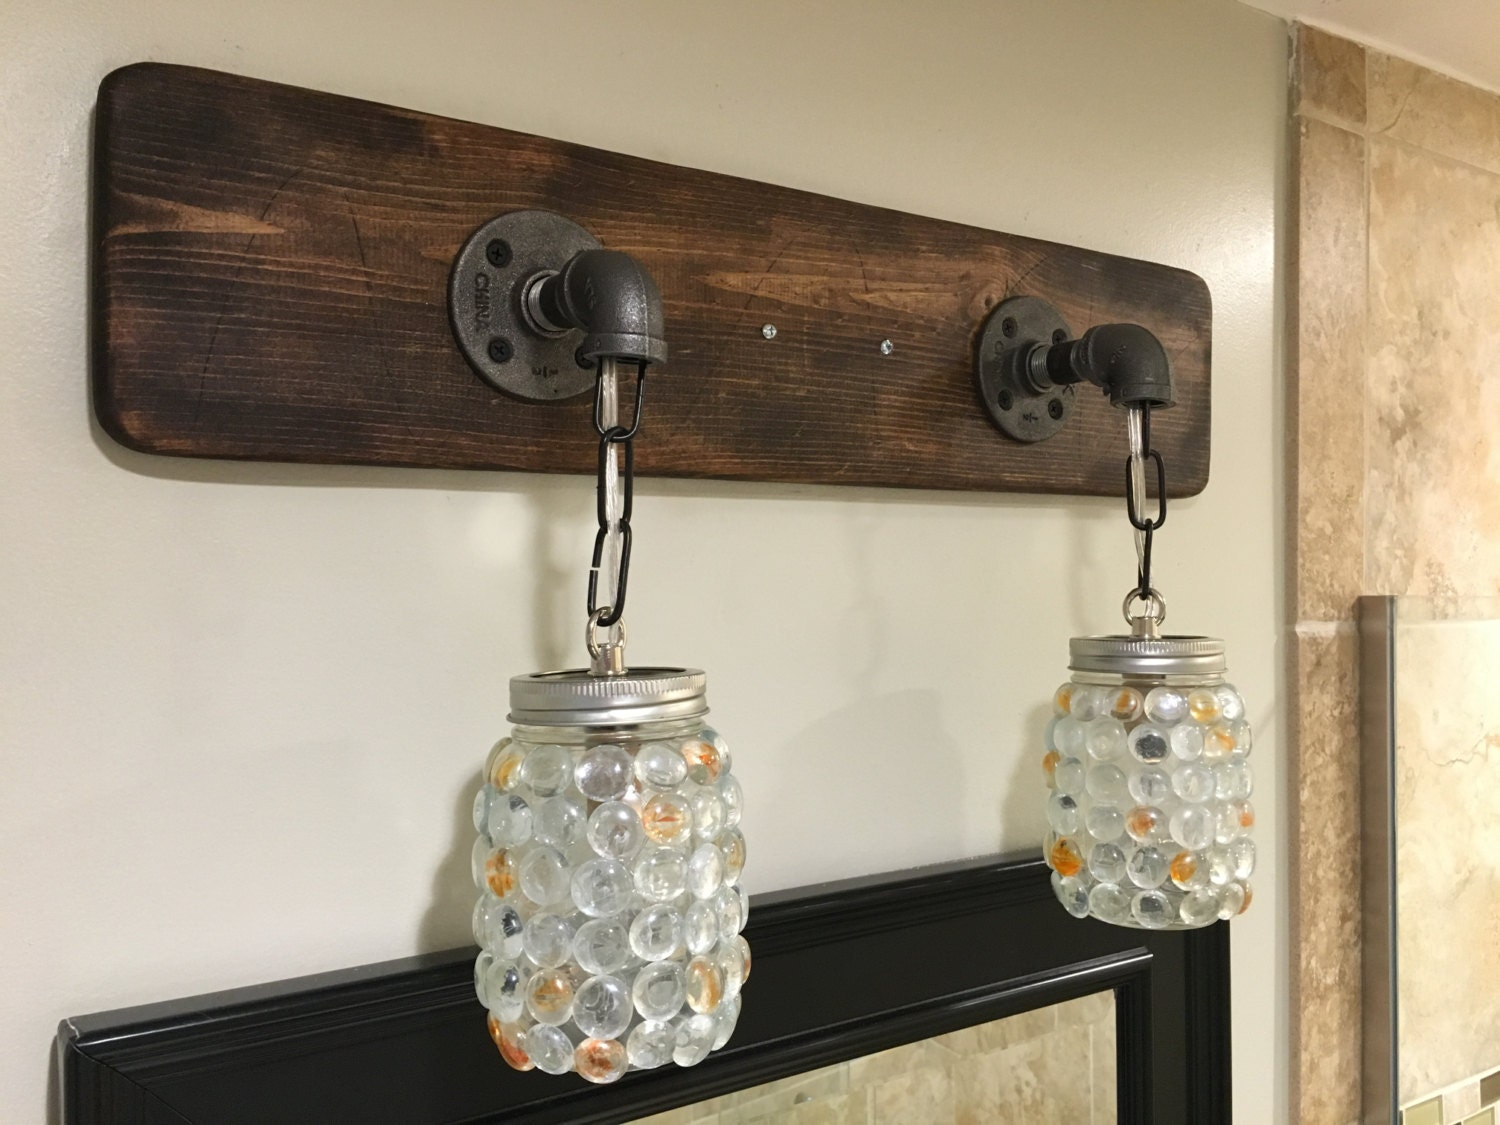 vanity light fixture mason jar gems light fixture by lightrooom. Black Bedroom Furniture Sets. Home Design Ideas